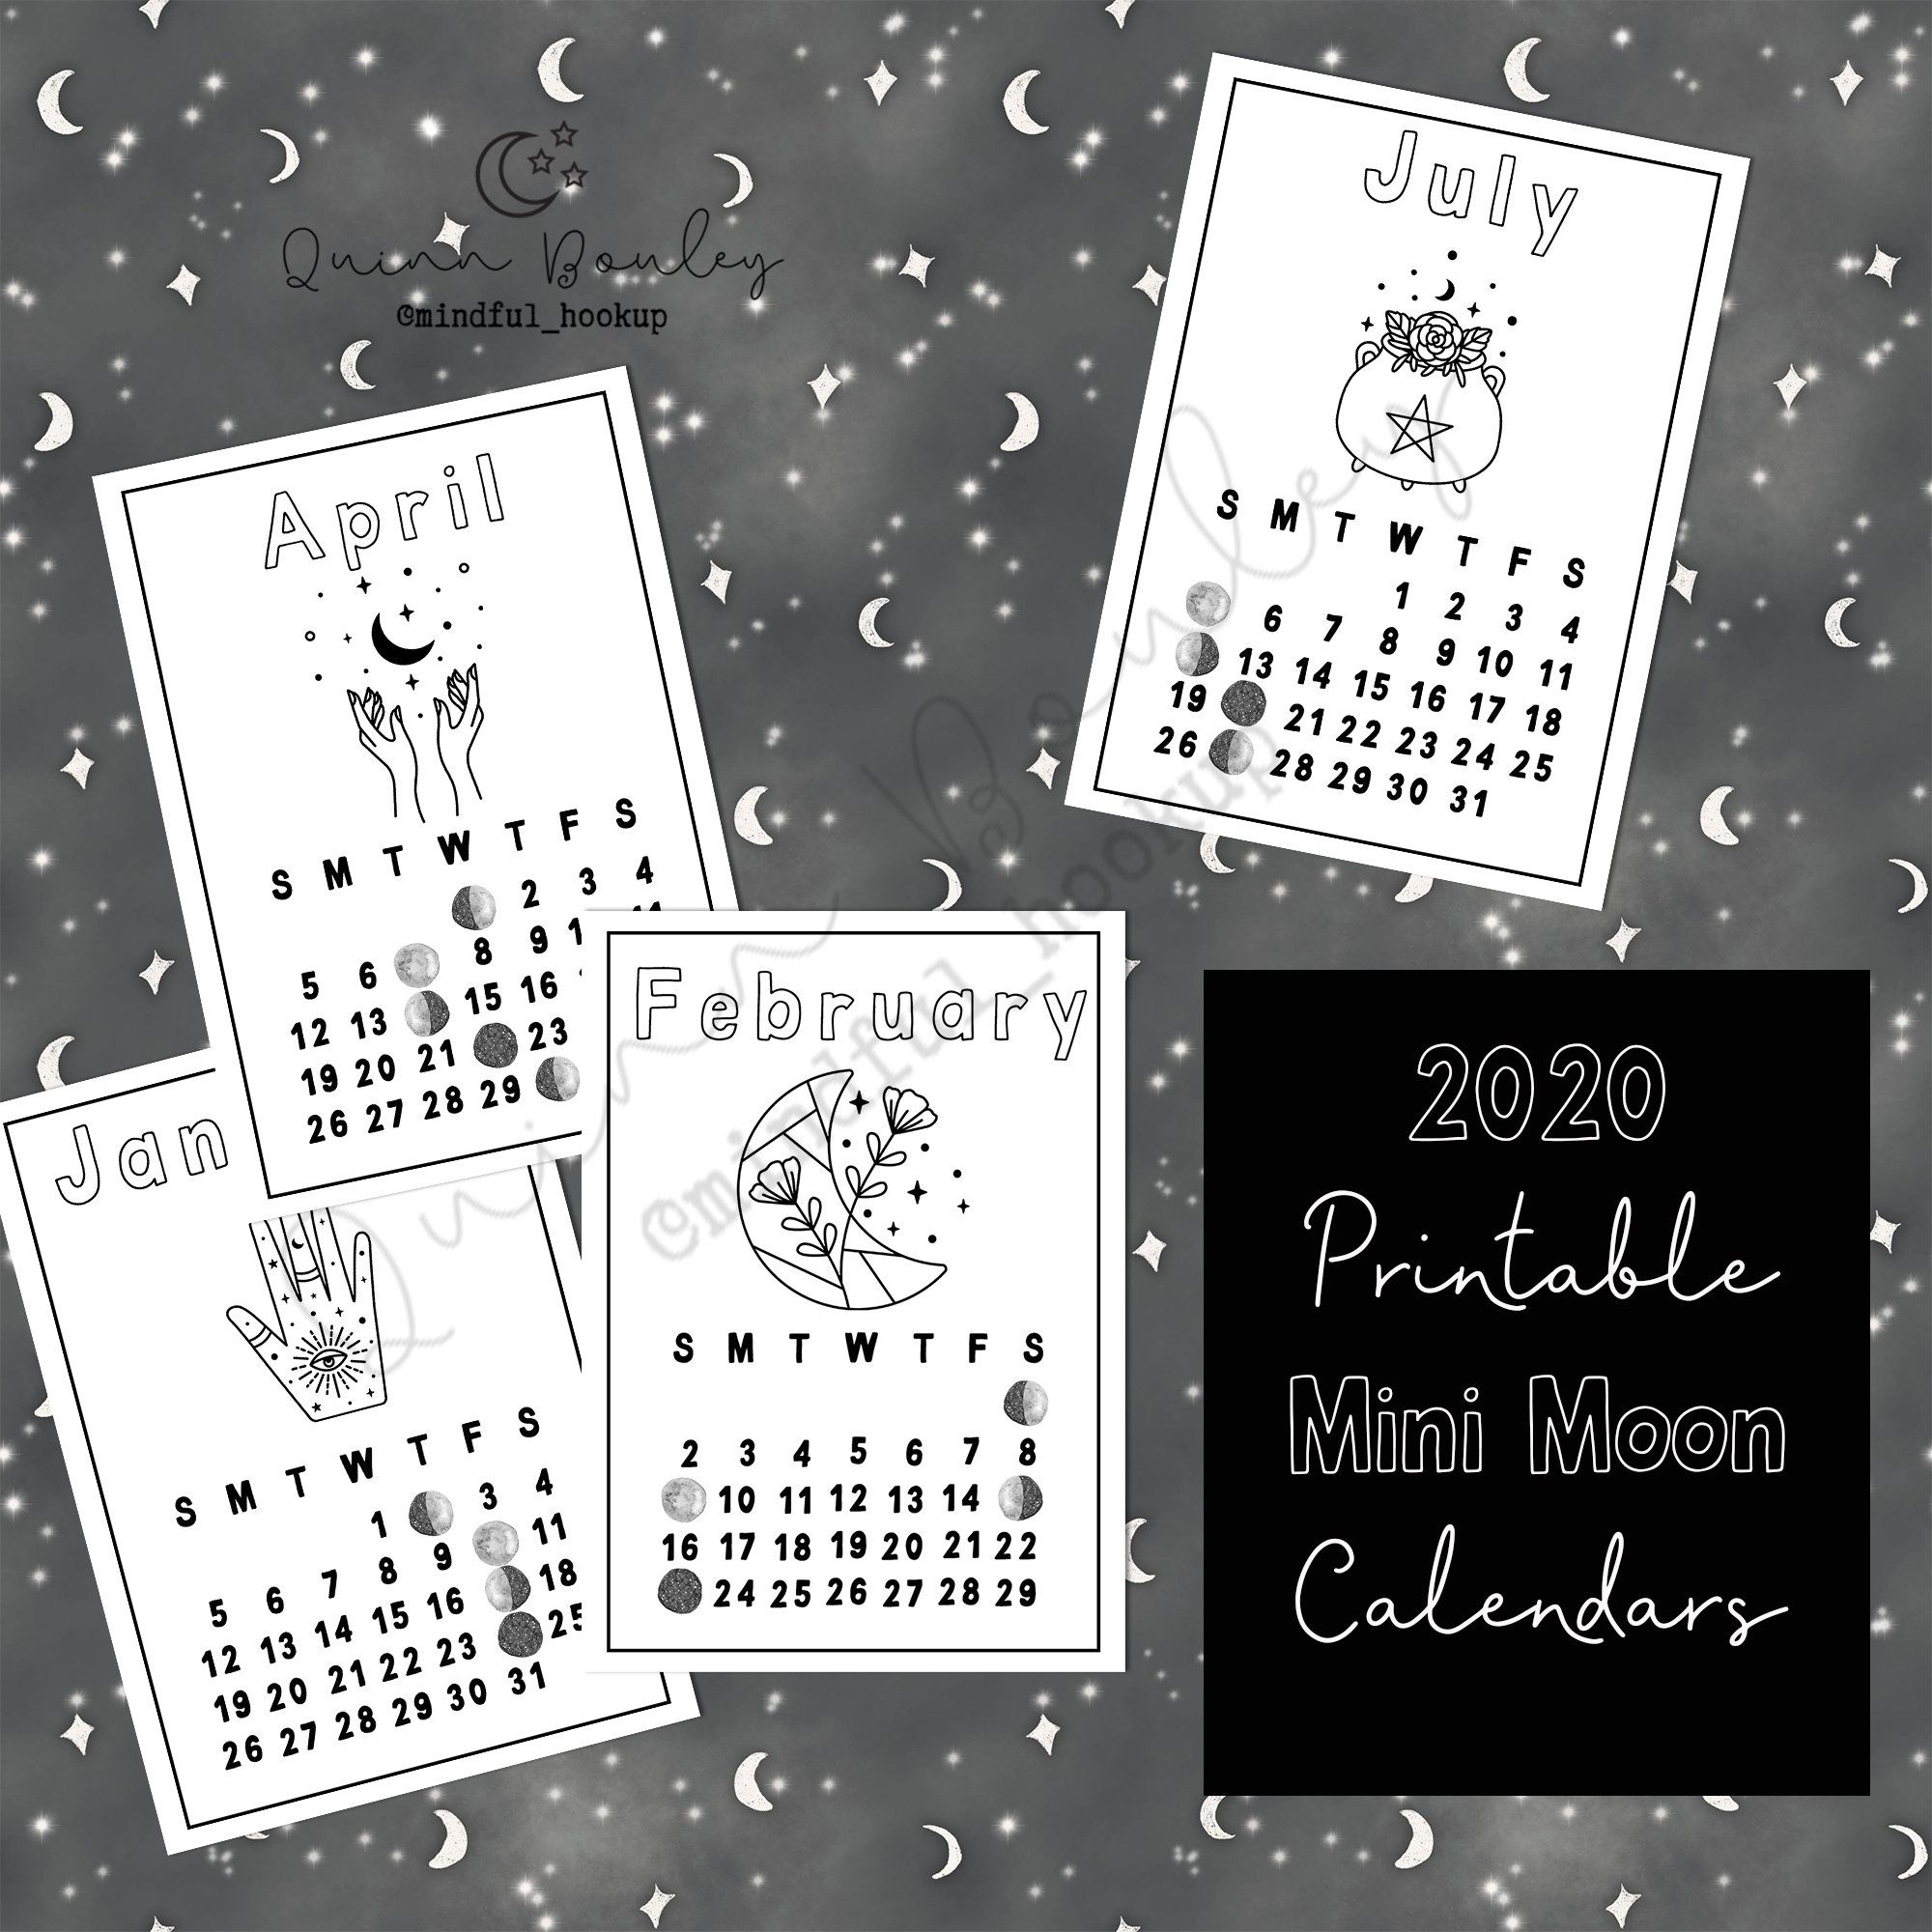 Mini Moon Calendars Printable